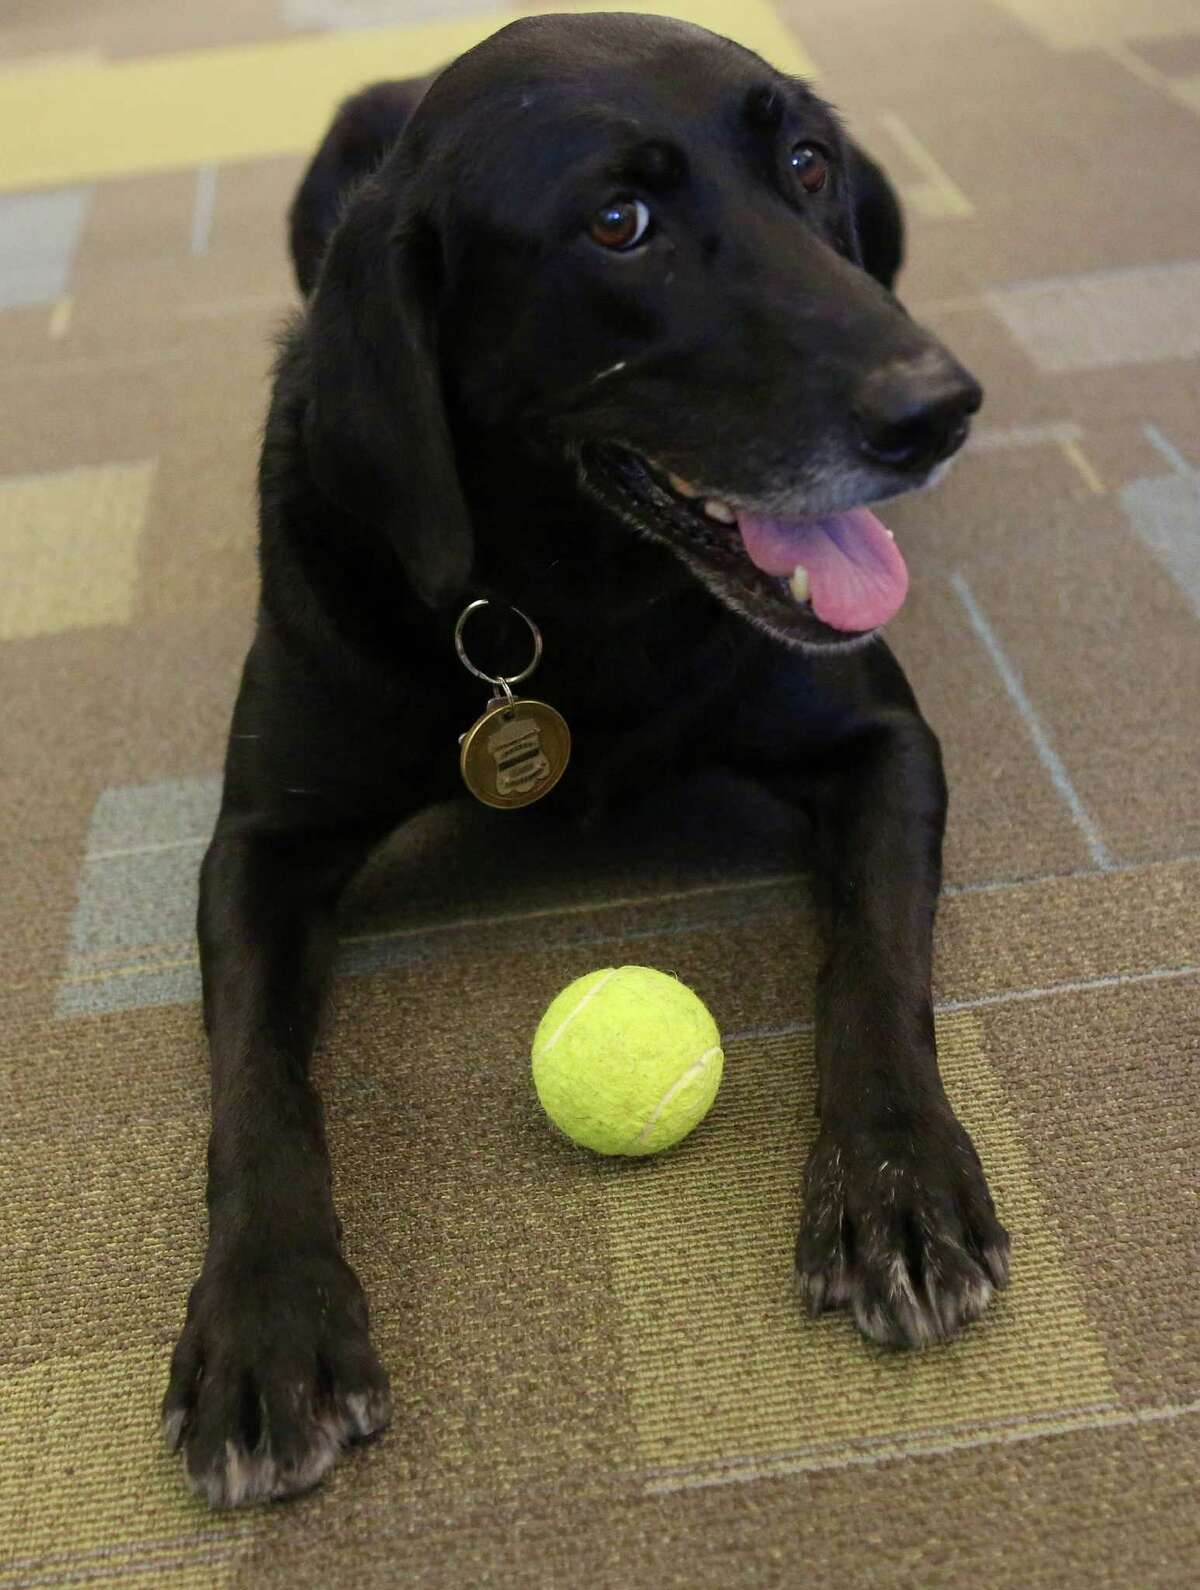 Kai, the San Antonio Fire Department's accelerant detection canine, lies on the floor with a tennis ball, one of her favorite toys, on Friday, July 25, 2014, at the San Antonio Public Safety Headquarters. Kai, a 6-year-old female labrador retriever, began working with Arson Investigator Justin Davis in July 2010 and always accompanies him at the office.